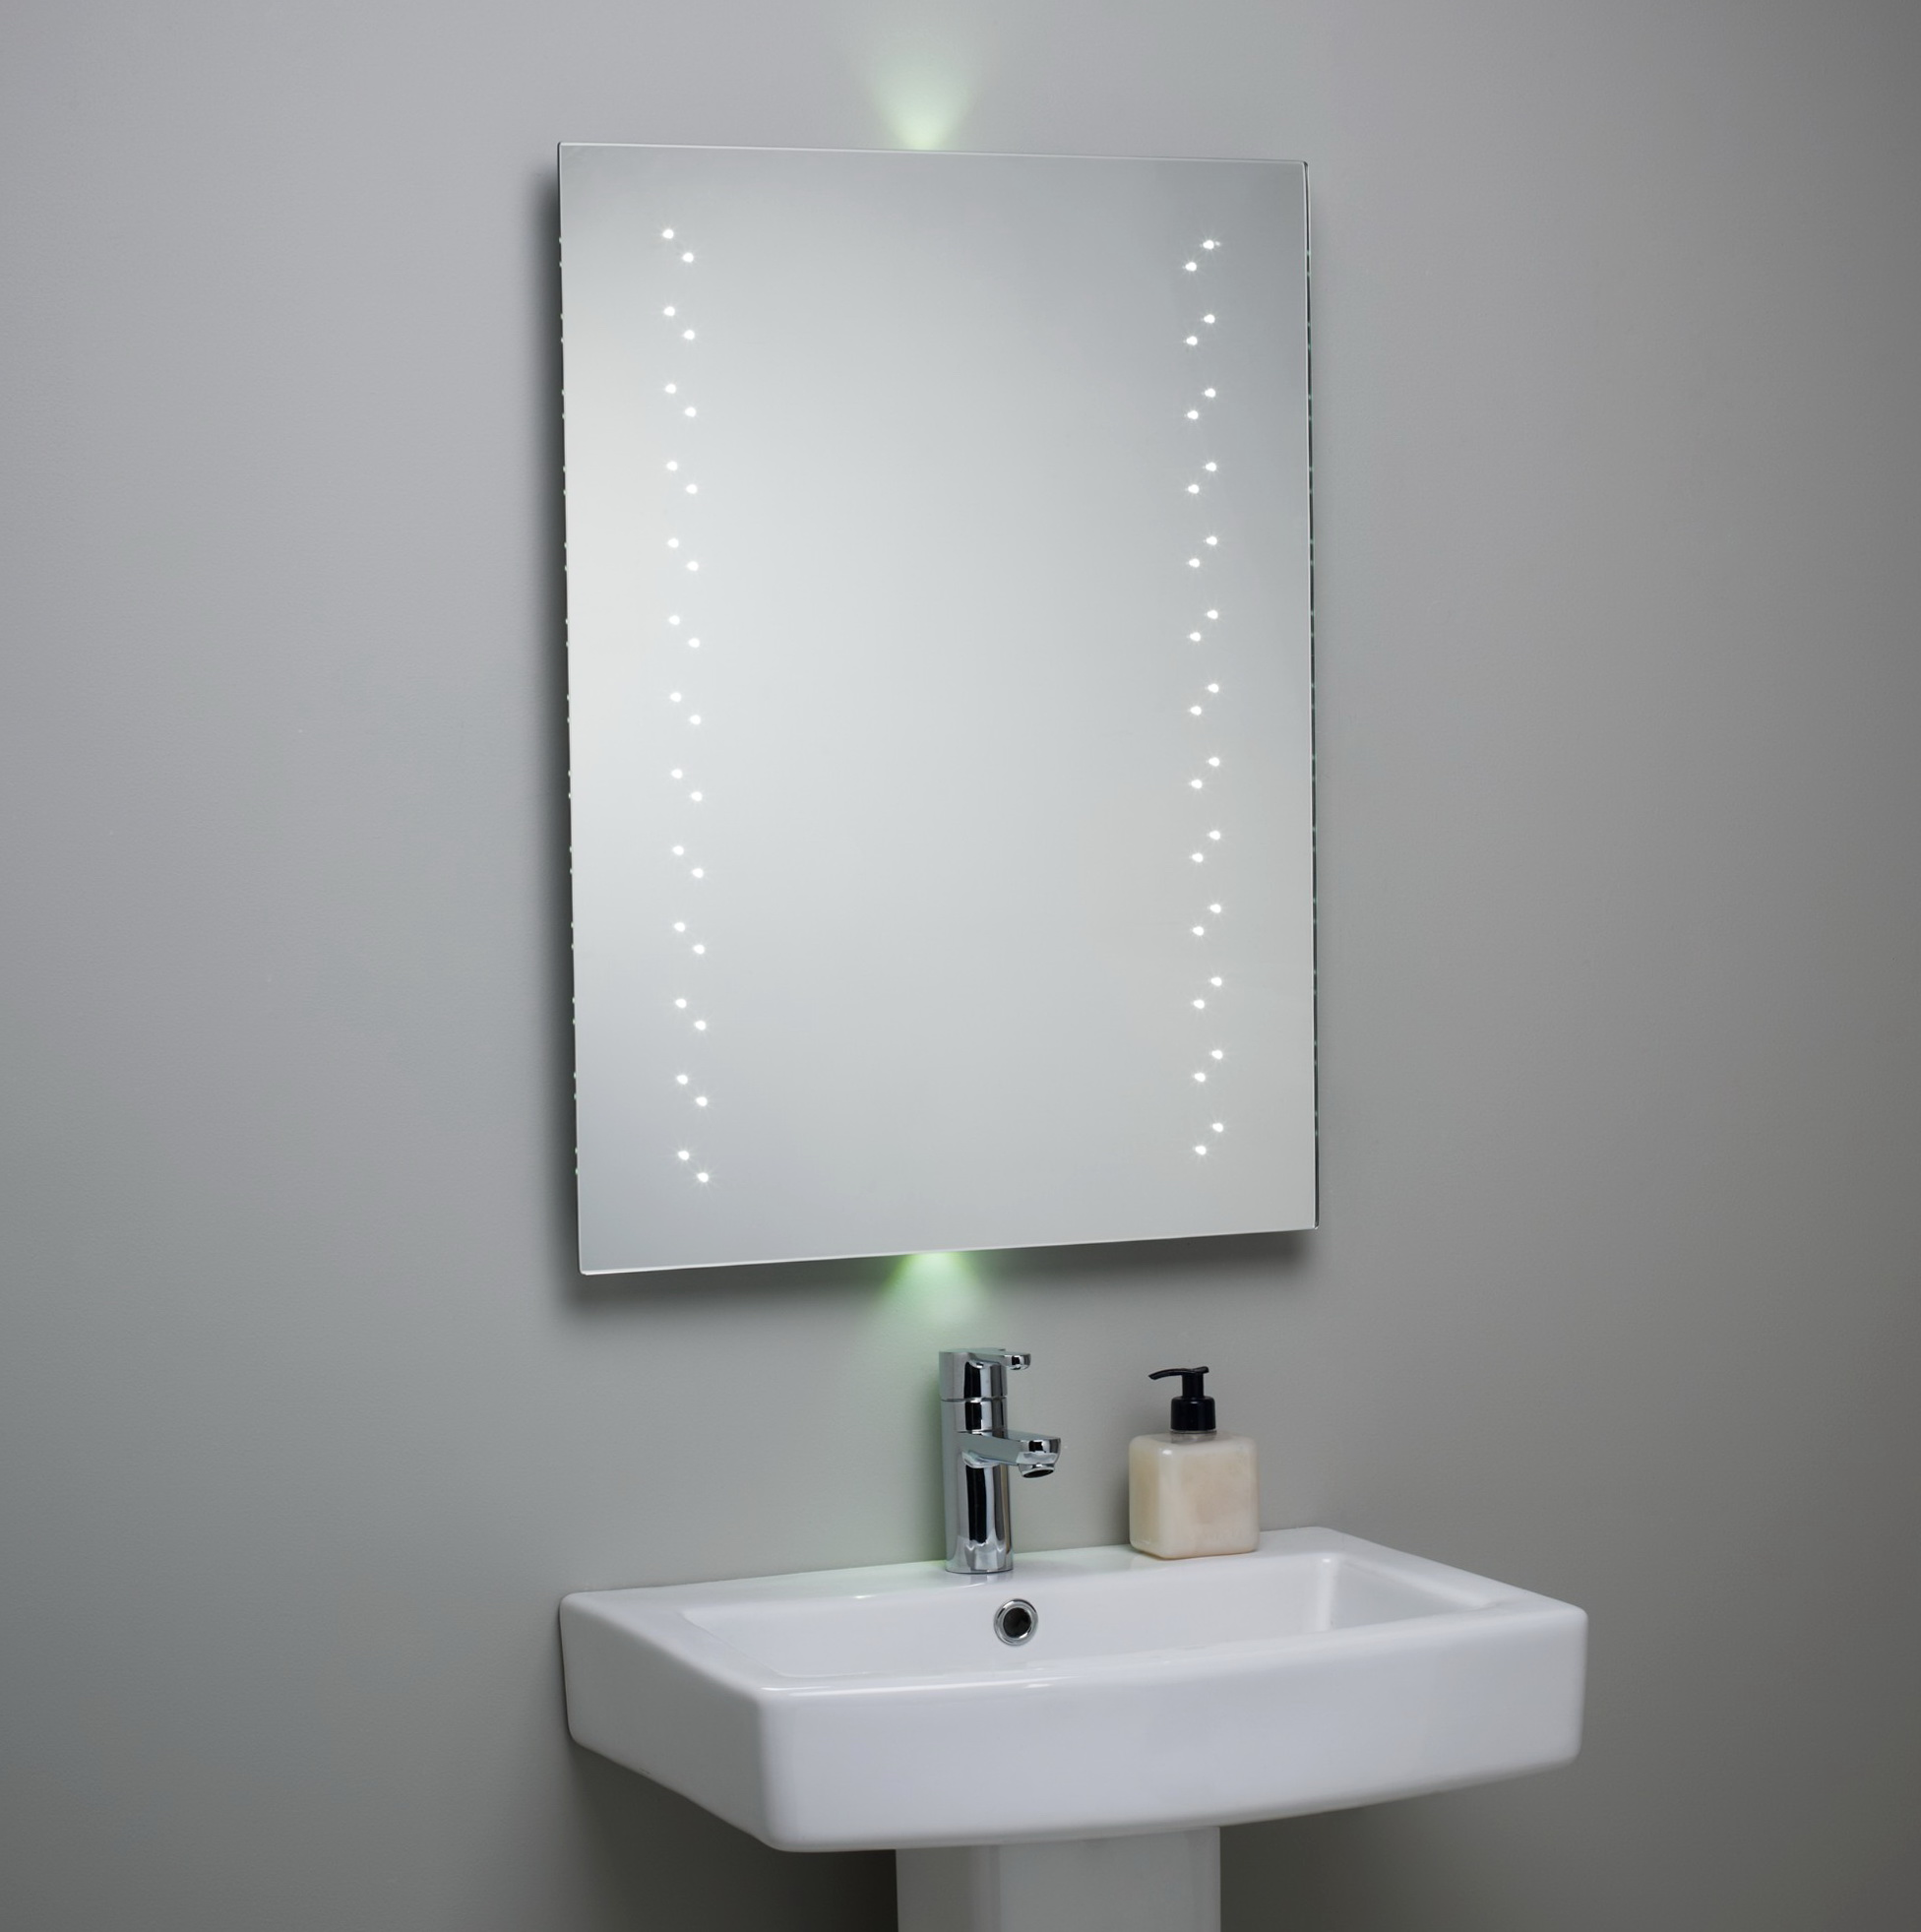 led lights behind bathroom mirror bathroom mirror with lights home design ideas 23666